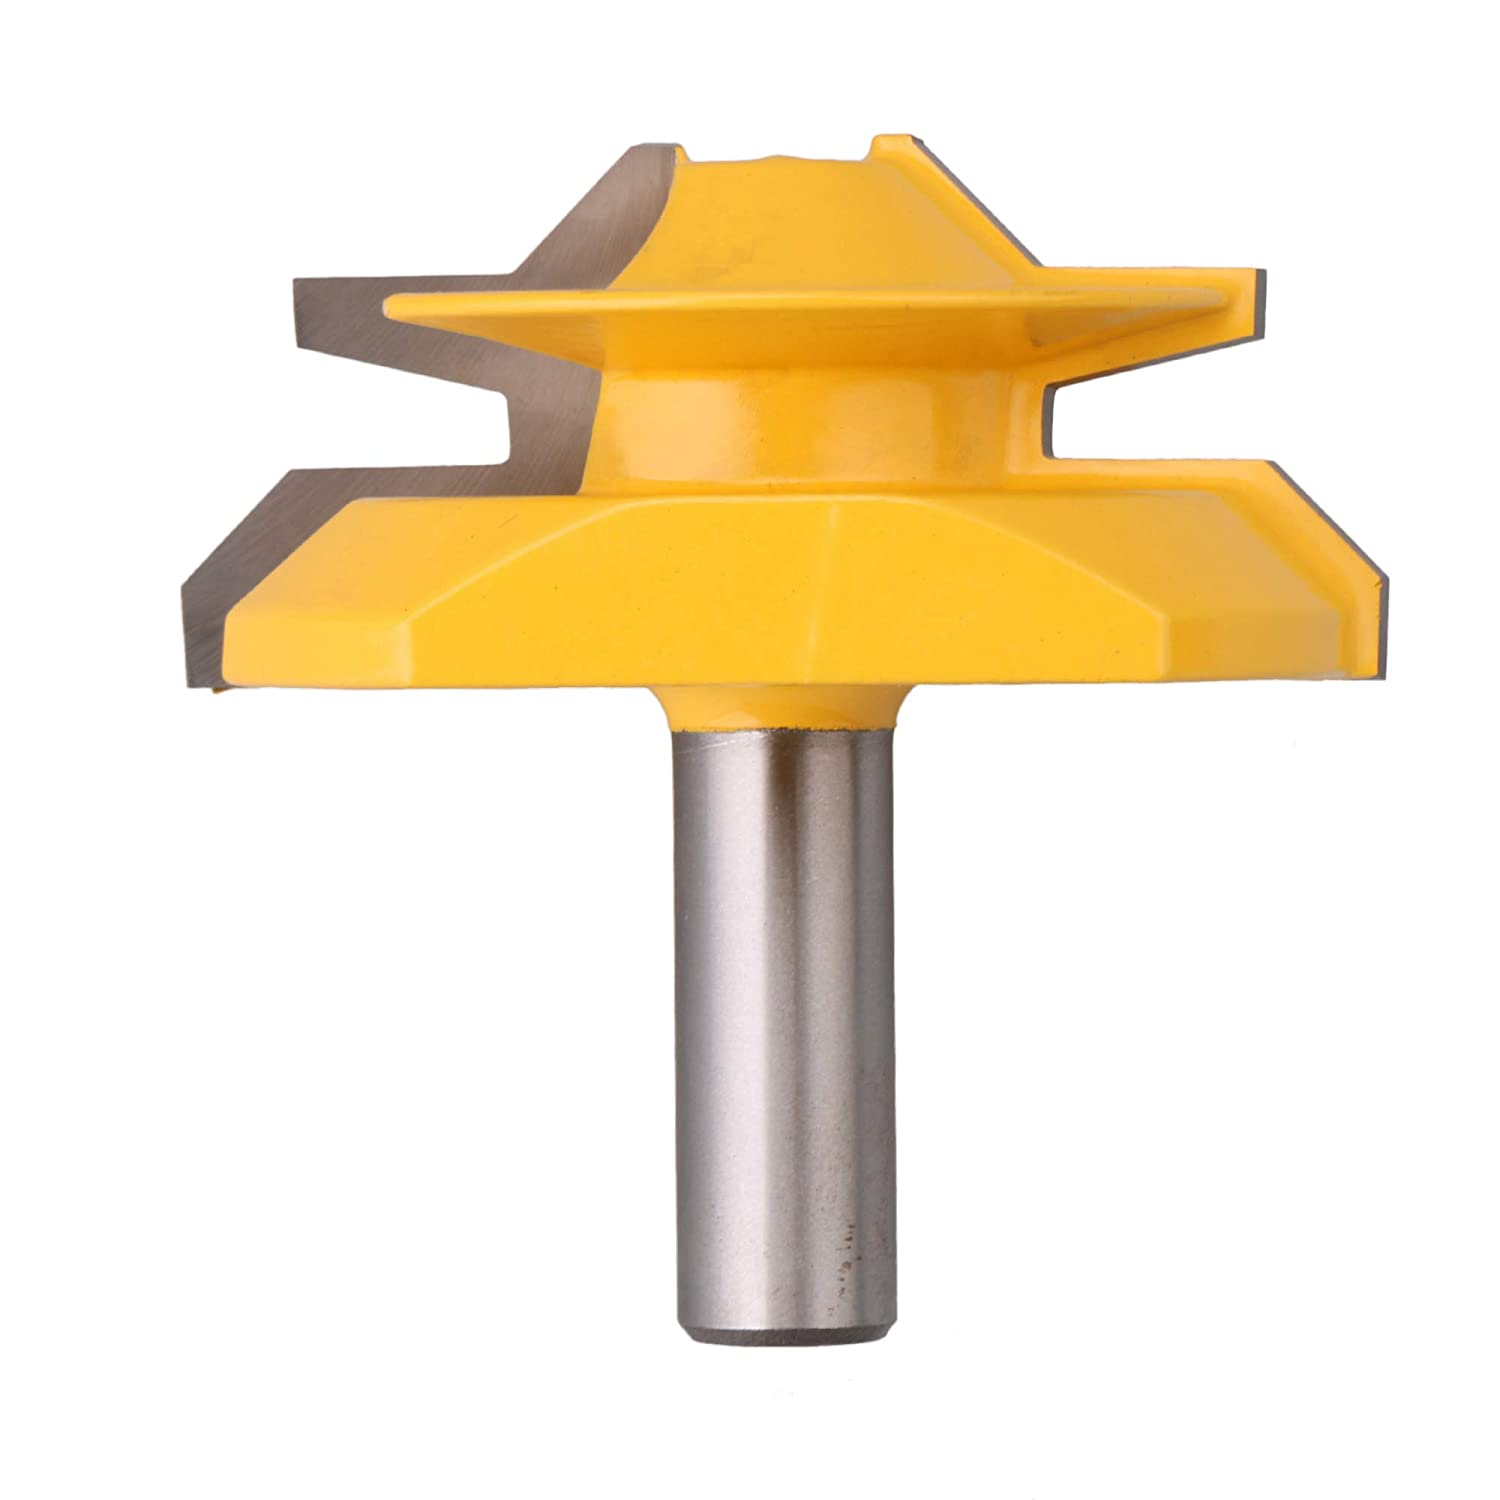 Yibuy 45°Joint Lock Miter Router Bit 1/2 Inch Shank 2-3/4 Inch Stock DIY Tool